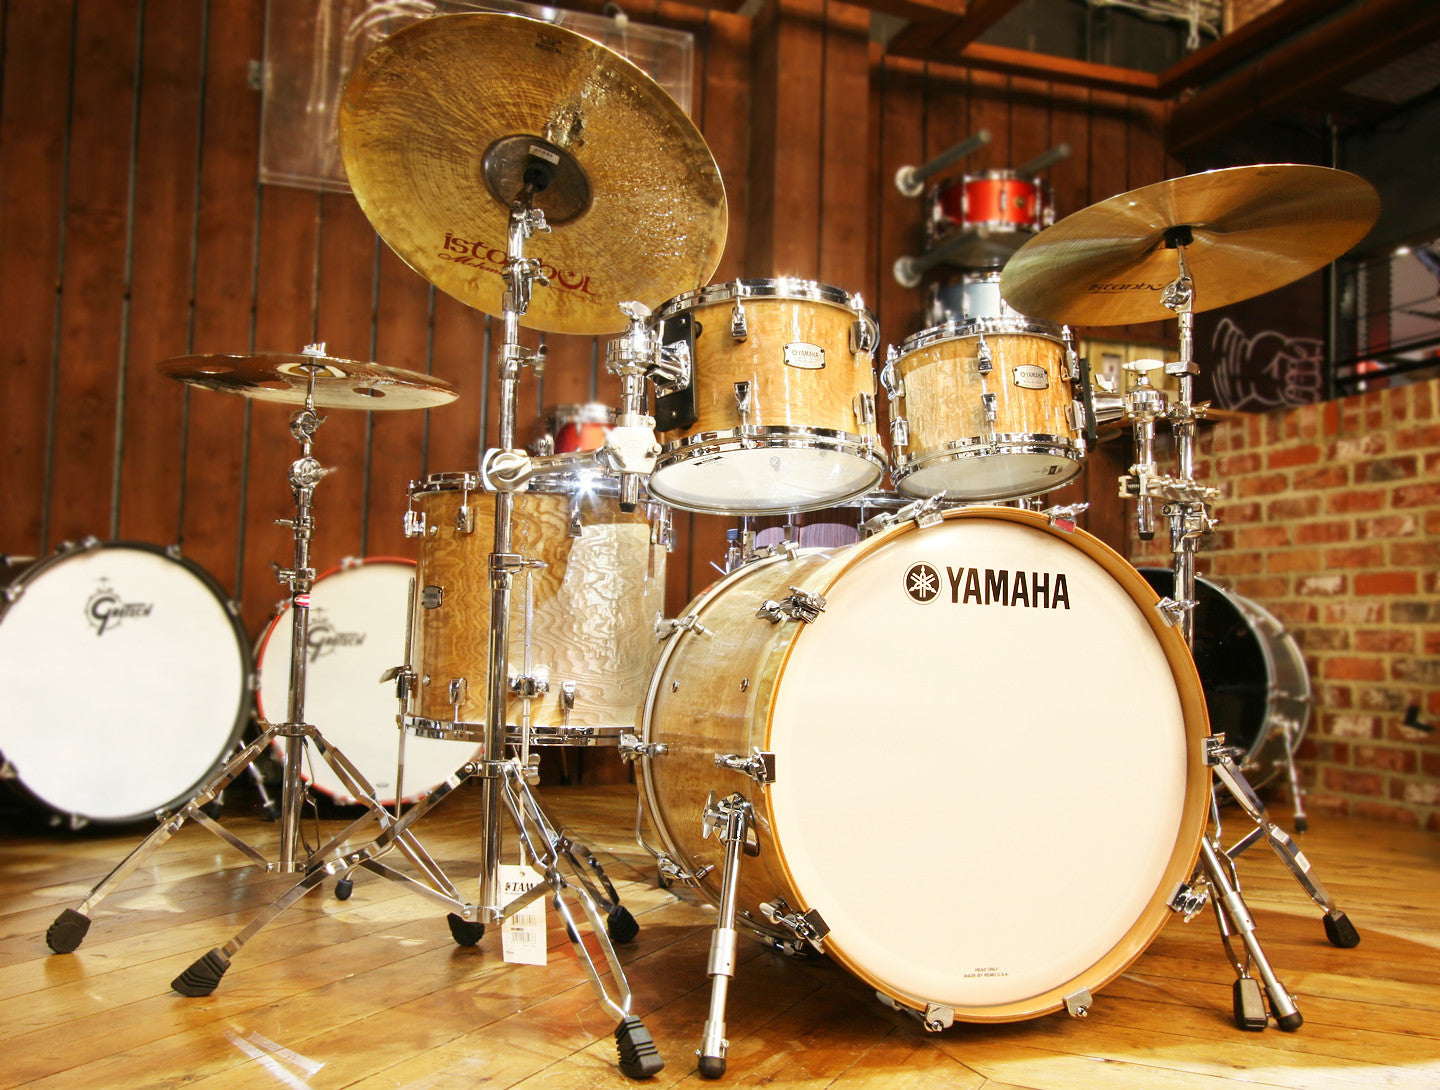 Yamaha Phx Phoenix 4 Piece Shell Pack In Textured Natural